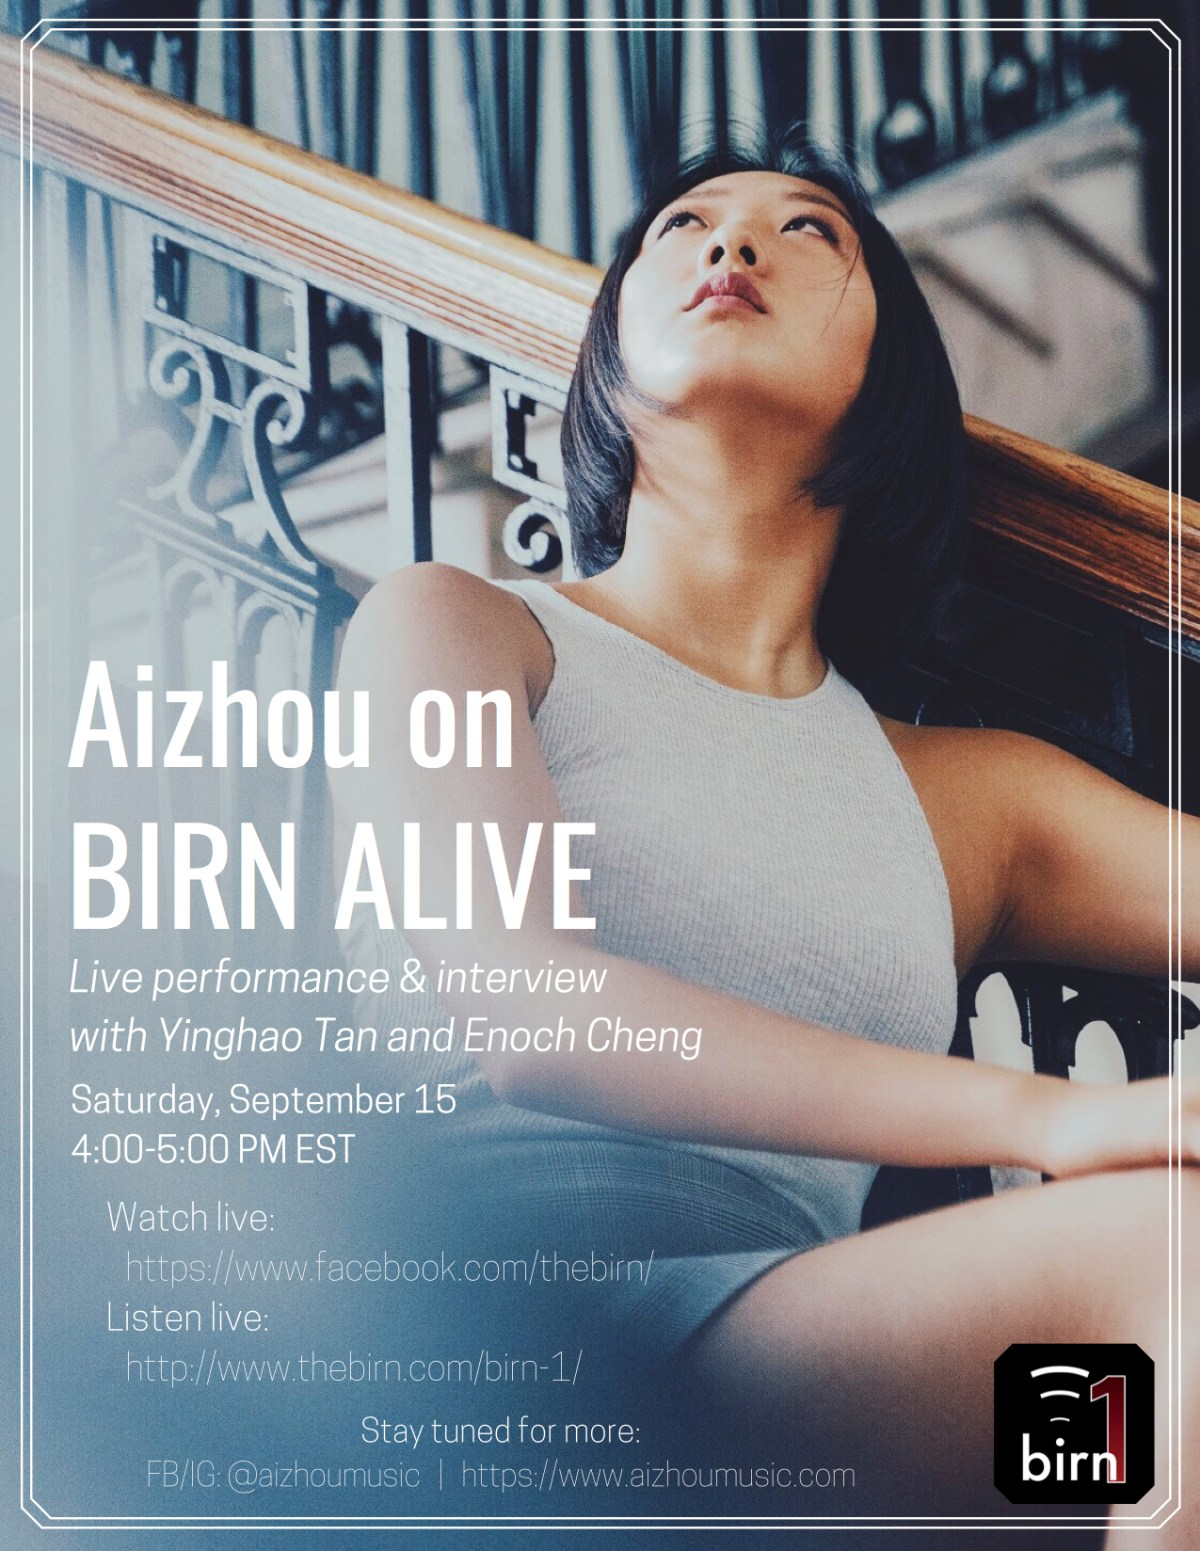 This week on BIRN Alive: Aizhou